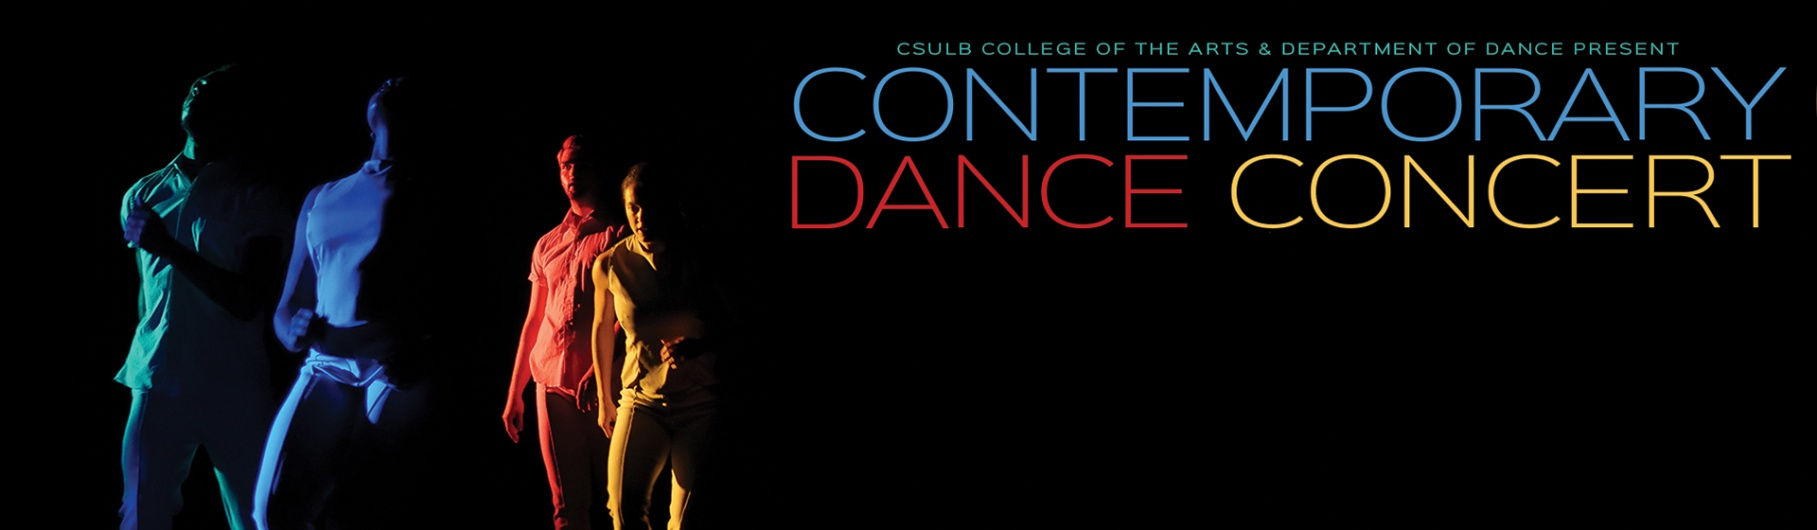 CSULB Dance Contemporary Dance Concert with four dancers in rainbow color